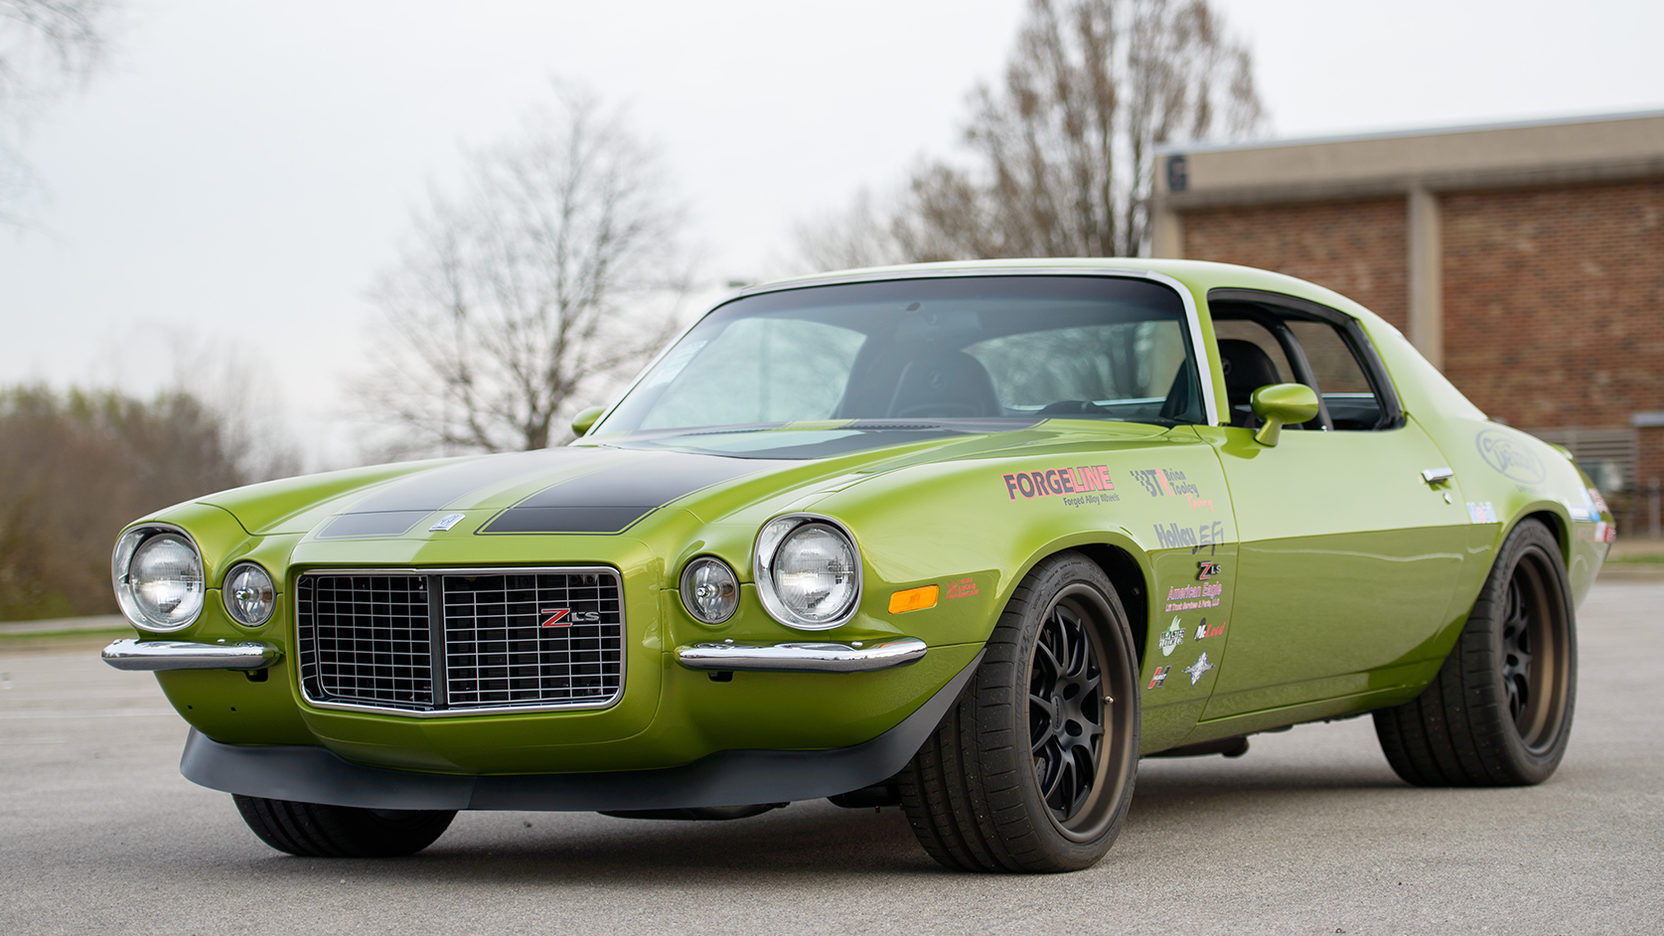 1970 Chevrolet Camaro | Southcentral Kentucky Community & Technical College's 1970